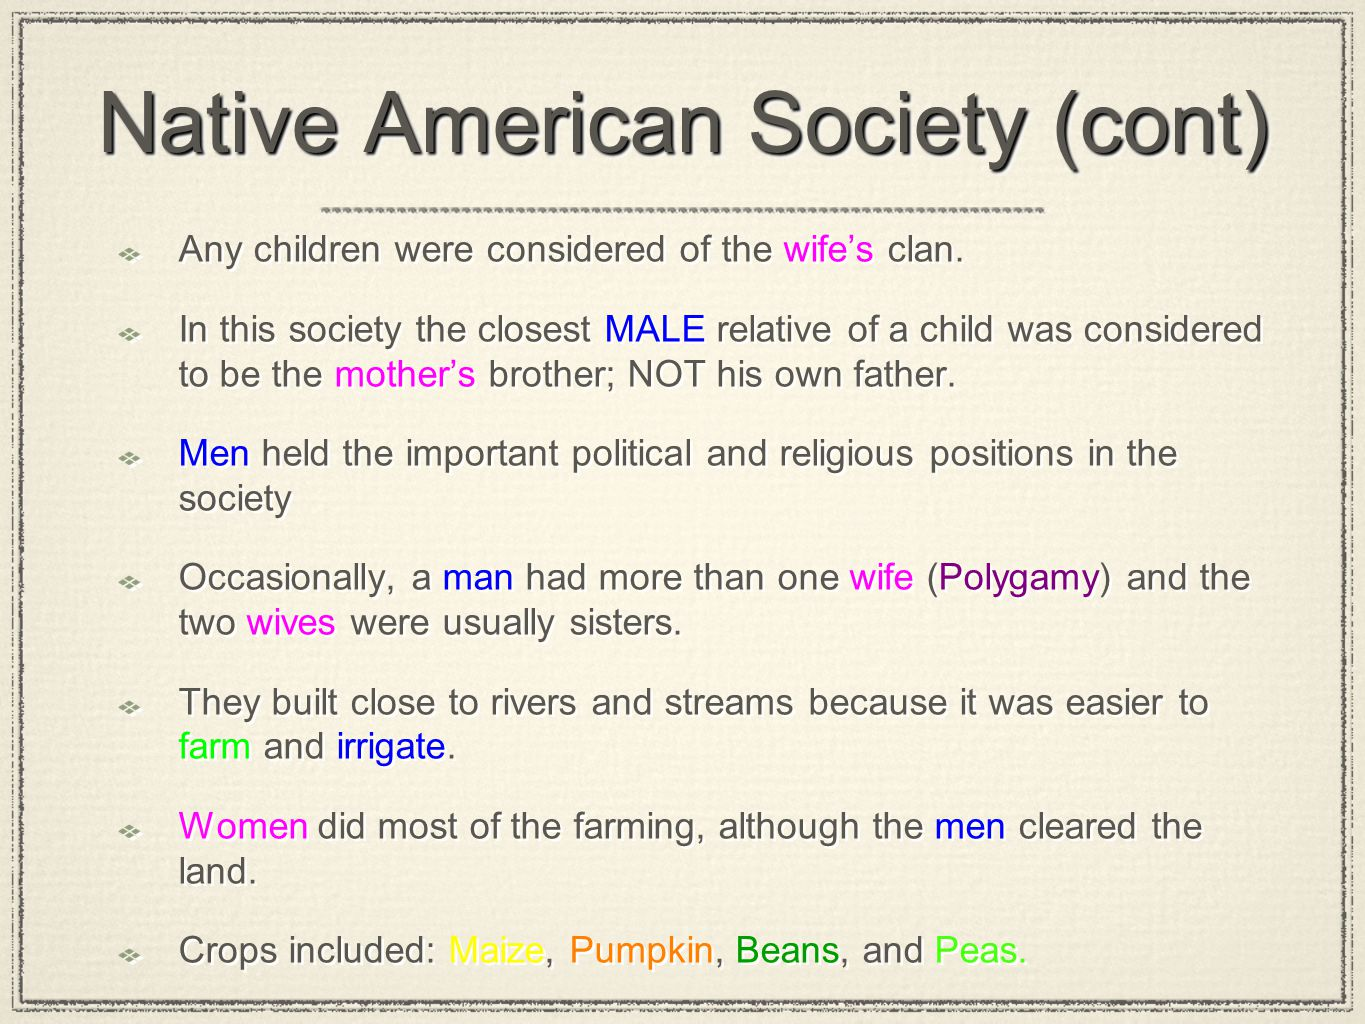 Native American Society (cont)